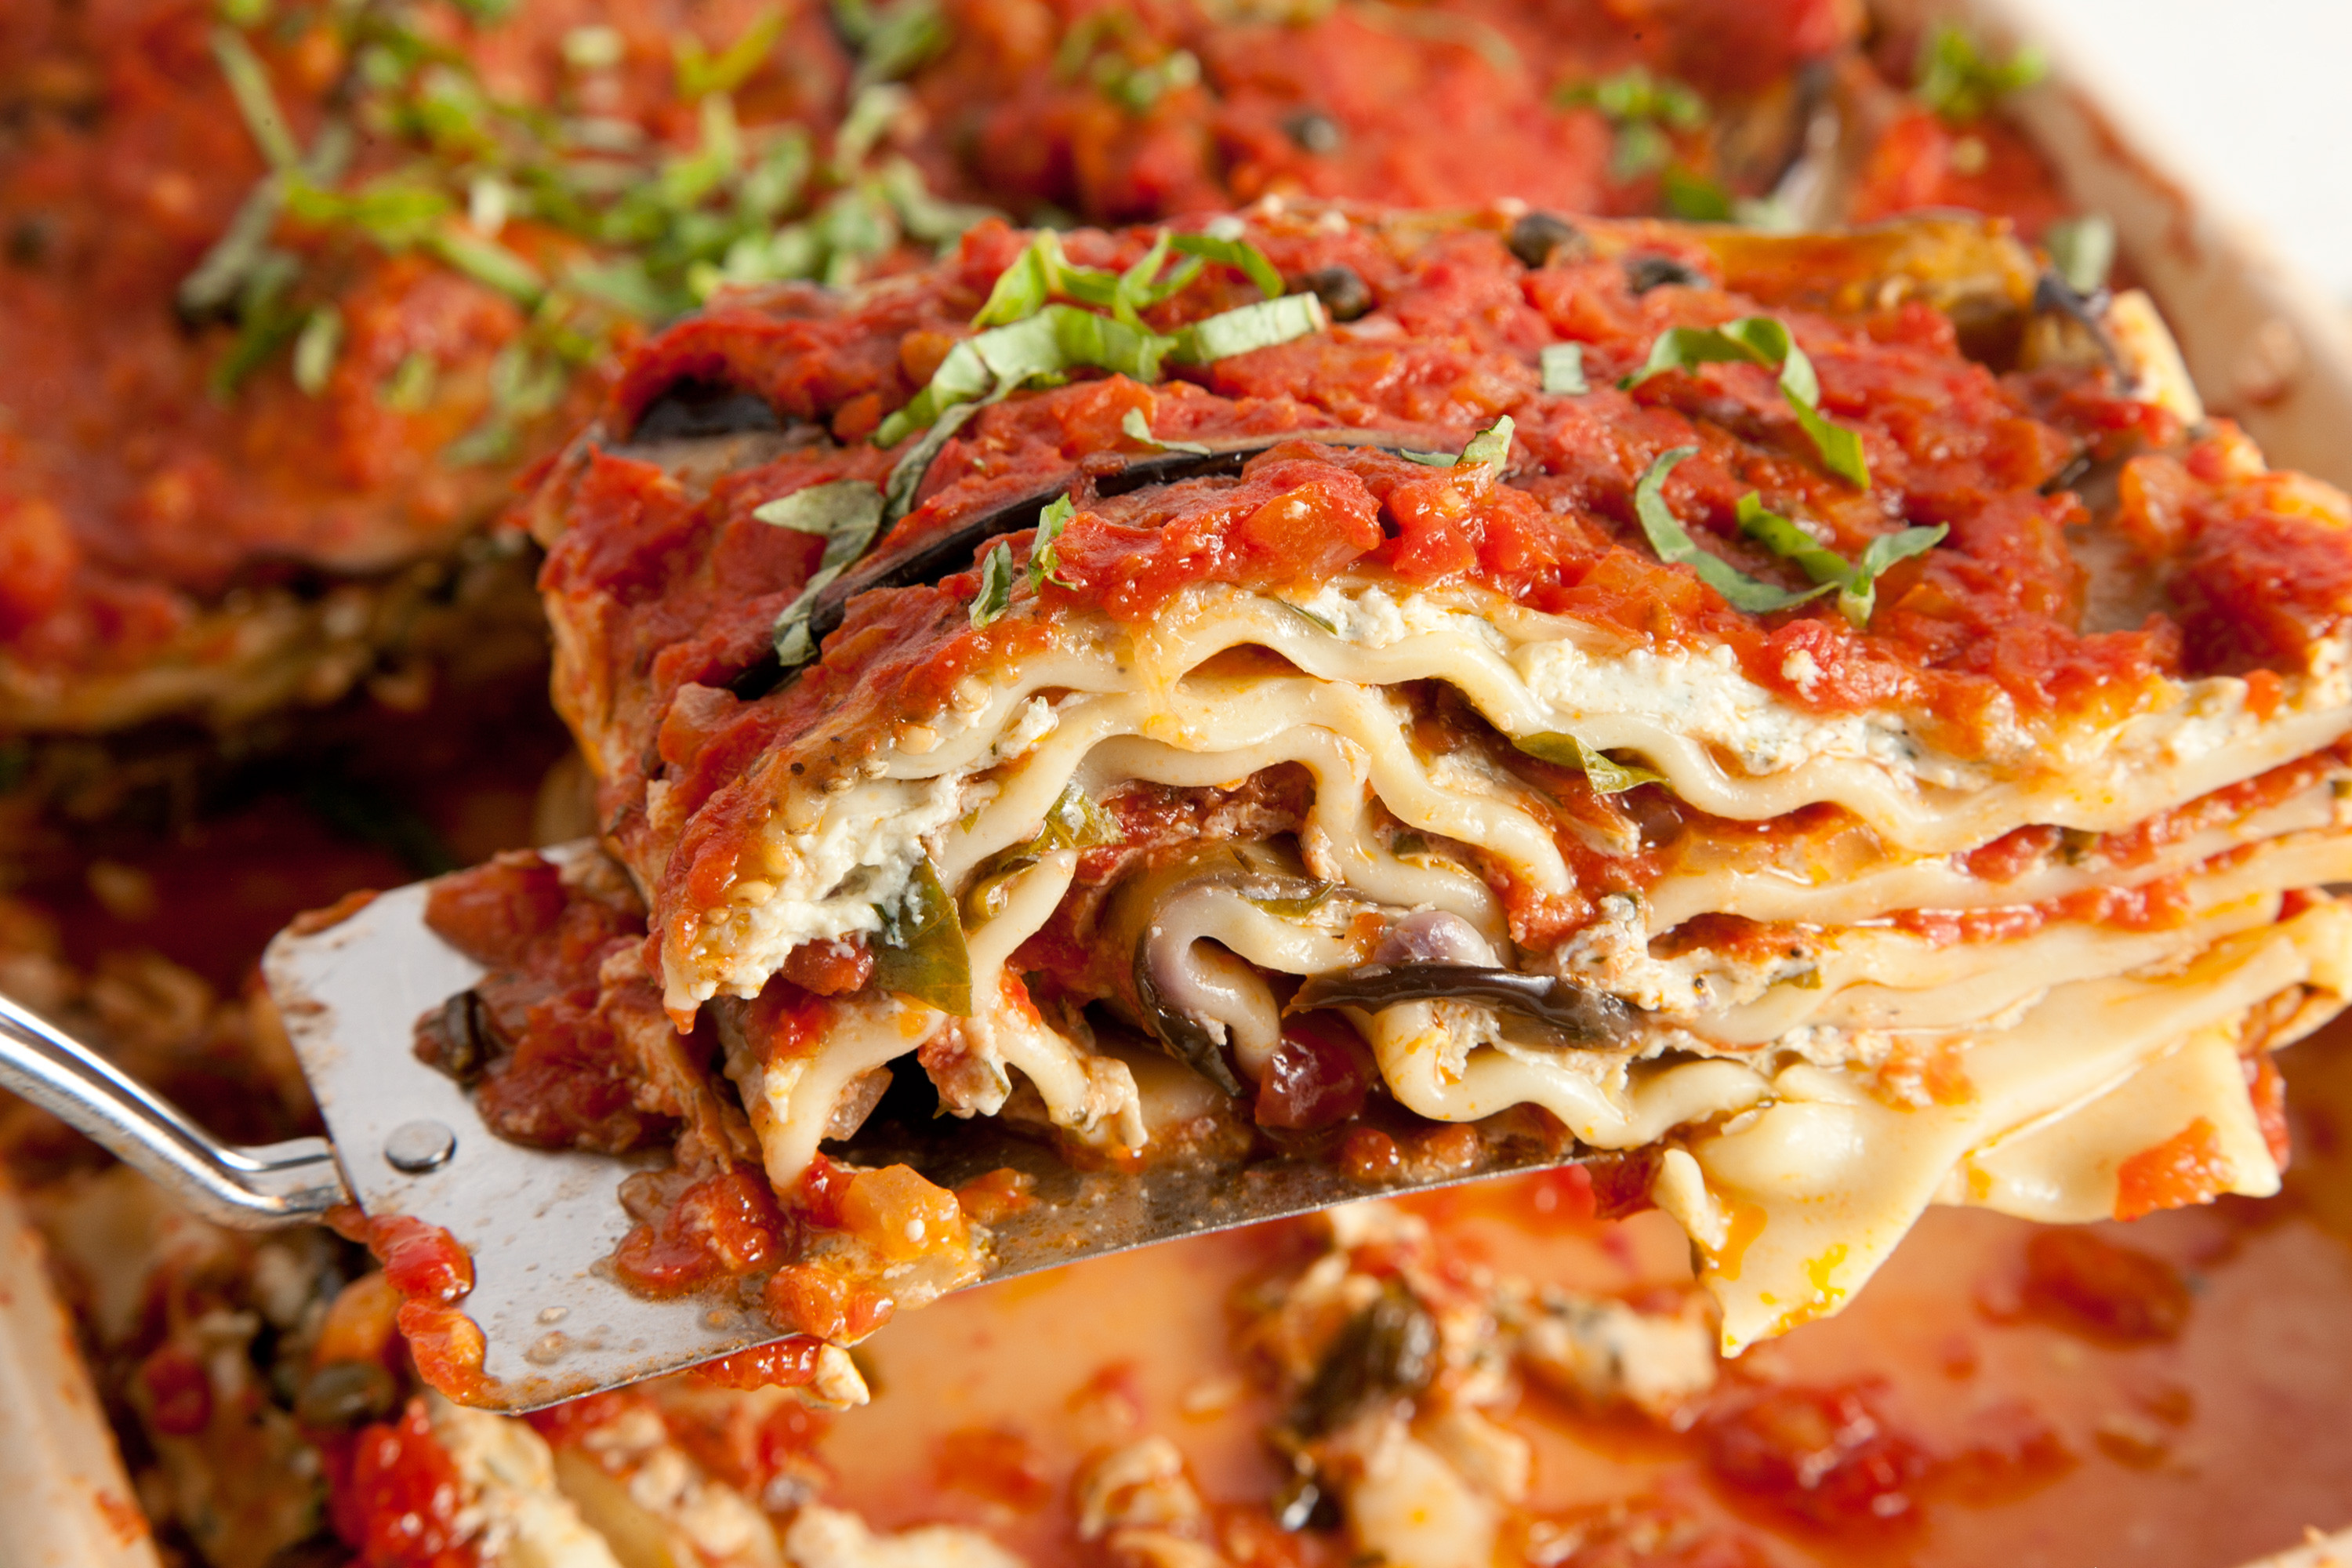 Vegetarian Eggplant Lasagna Without Noodles  Vegan Lasagna 22 Eggplant Recipes Chowhound